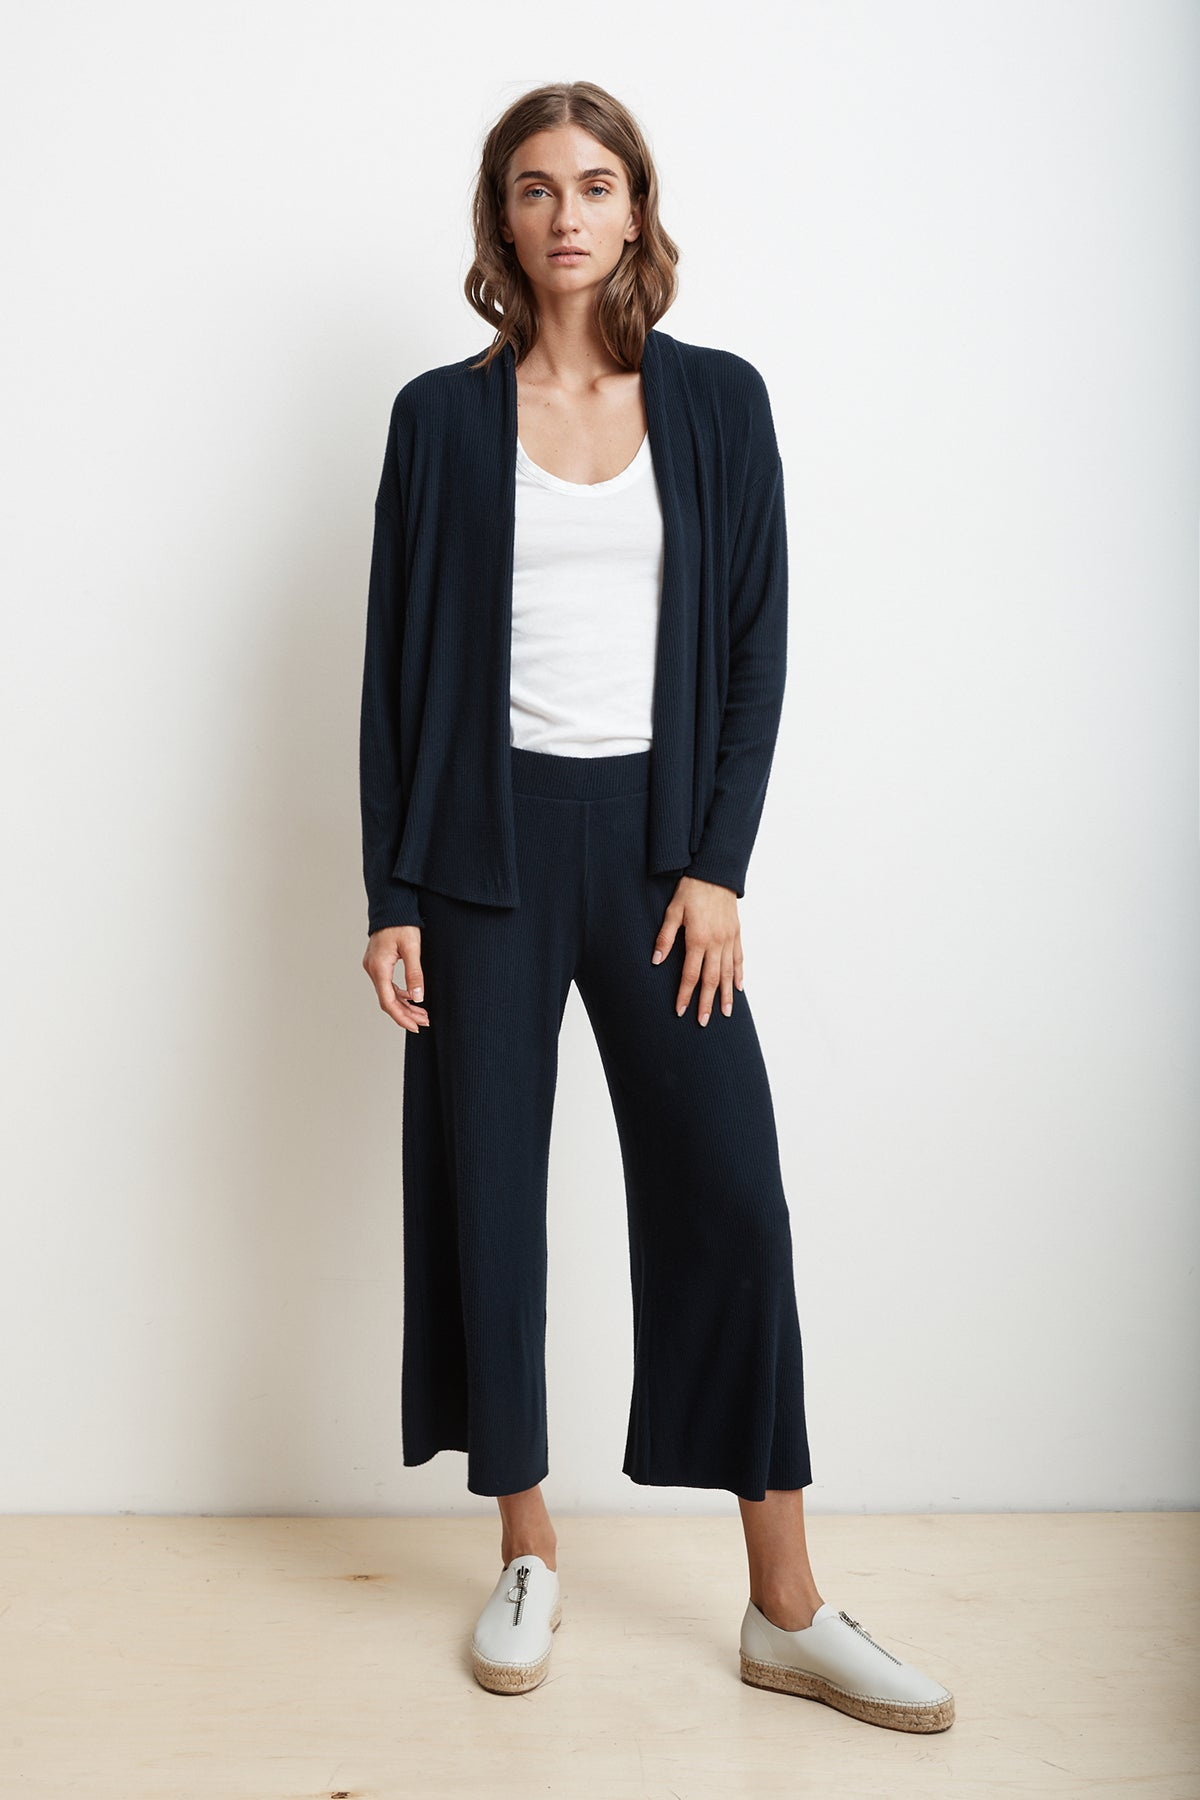 MONICA COZY RIB WIDE LEG JOGGER